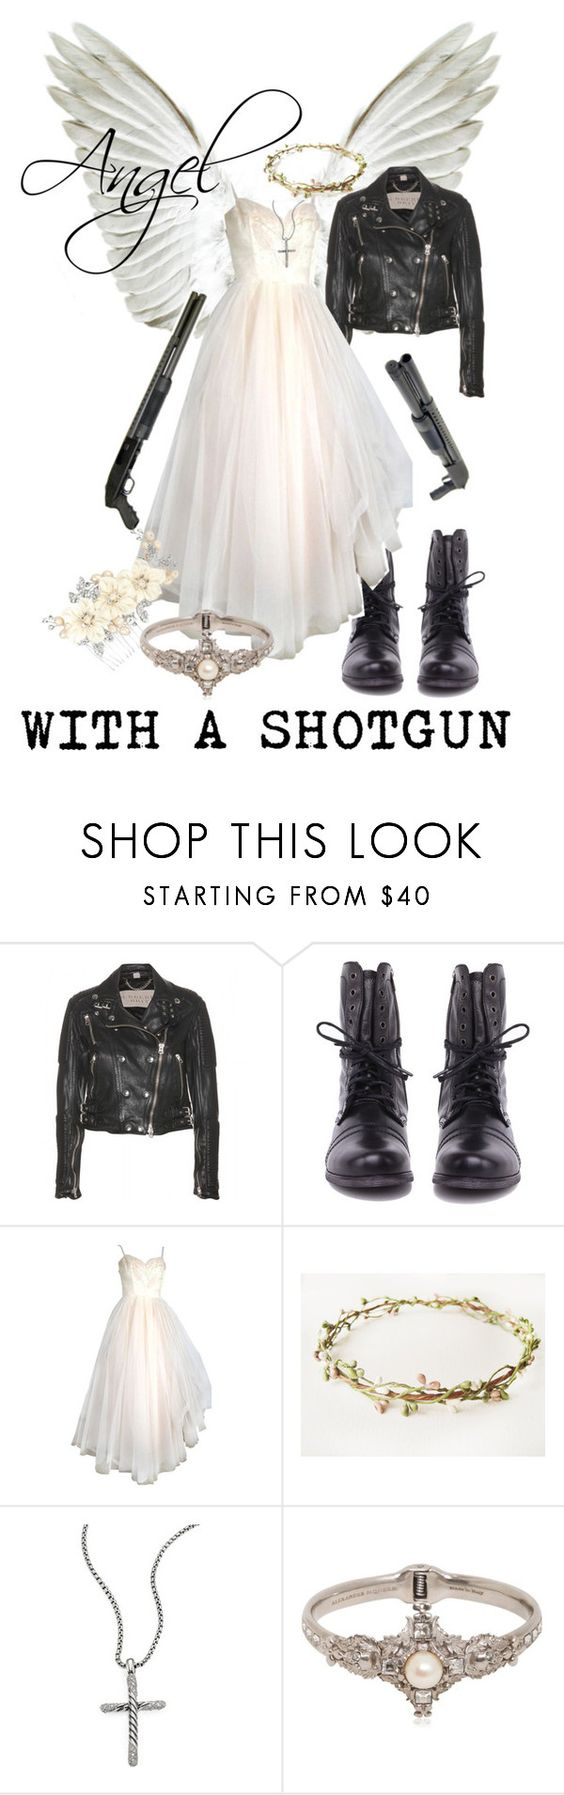 """""""Angel With A Shotgun"""" by elliequestrienne ❤ liked on Polyvore featuring Burberry, Steve Madden, GALA, David Yurman, Alexander McQueen and Alan Hannah"""